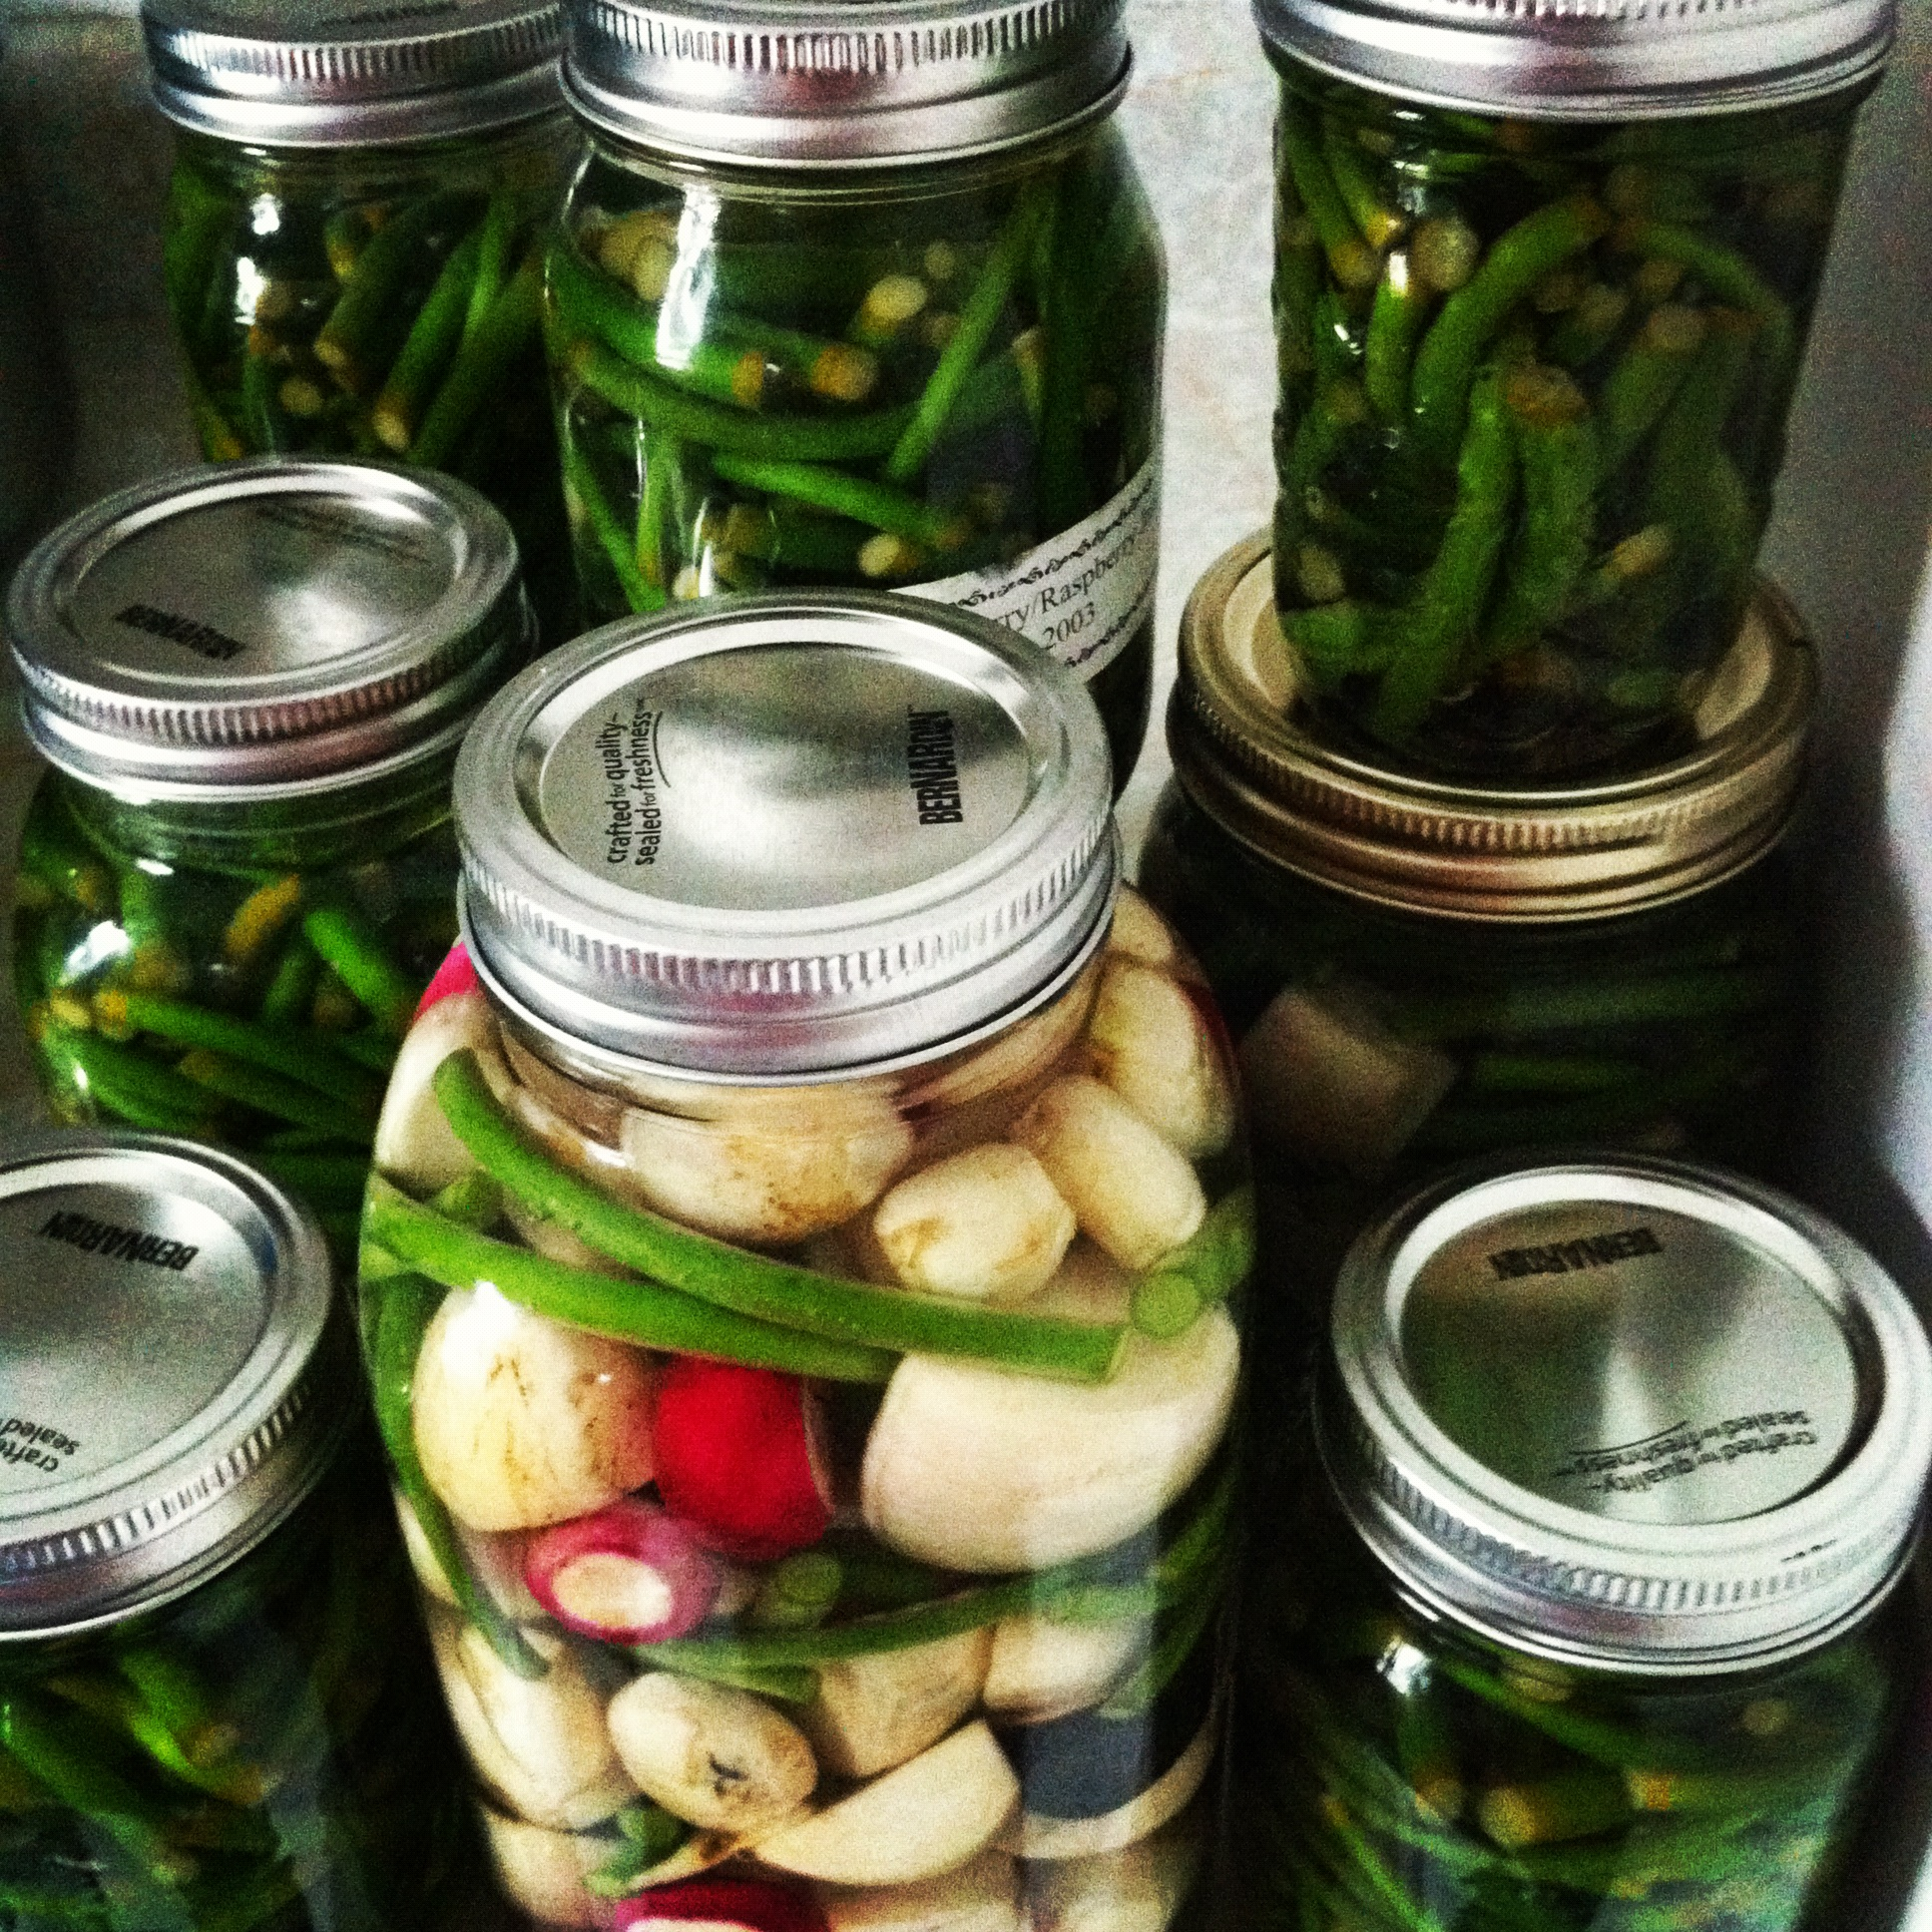 Pickling our produce.